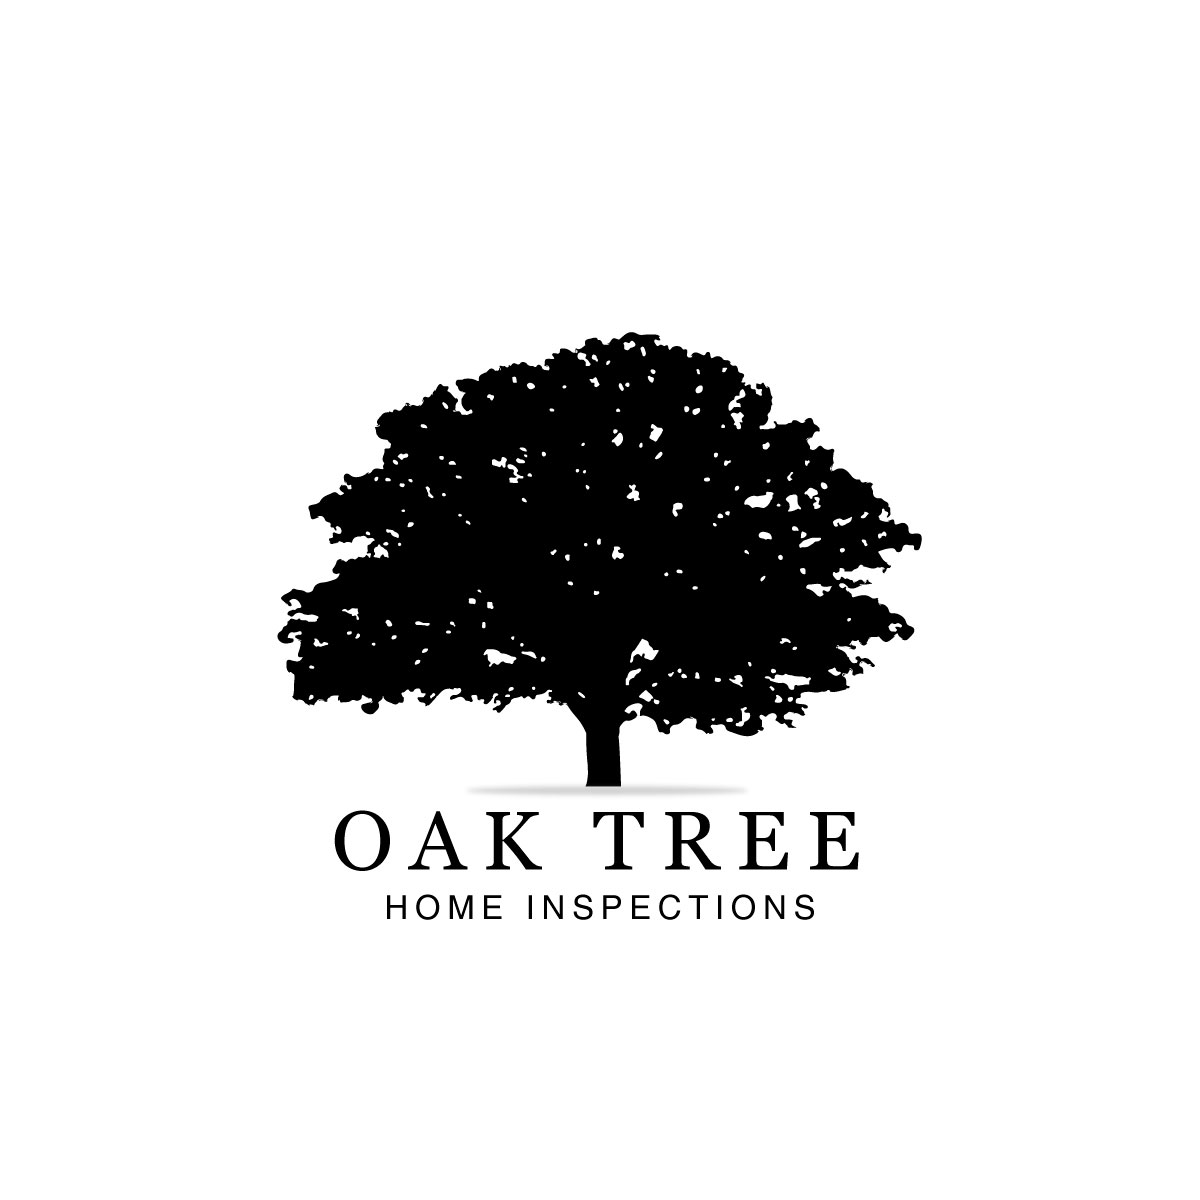 OakTree Home Inspections image